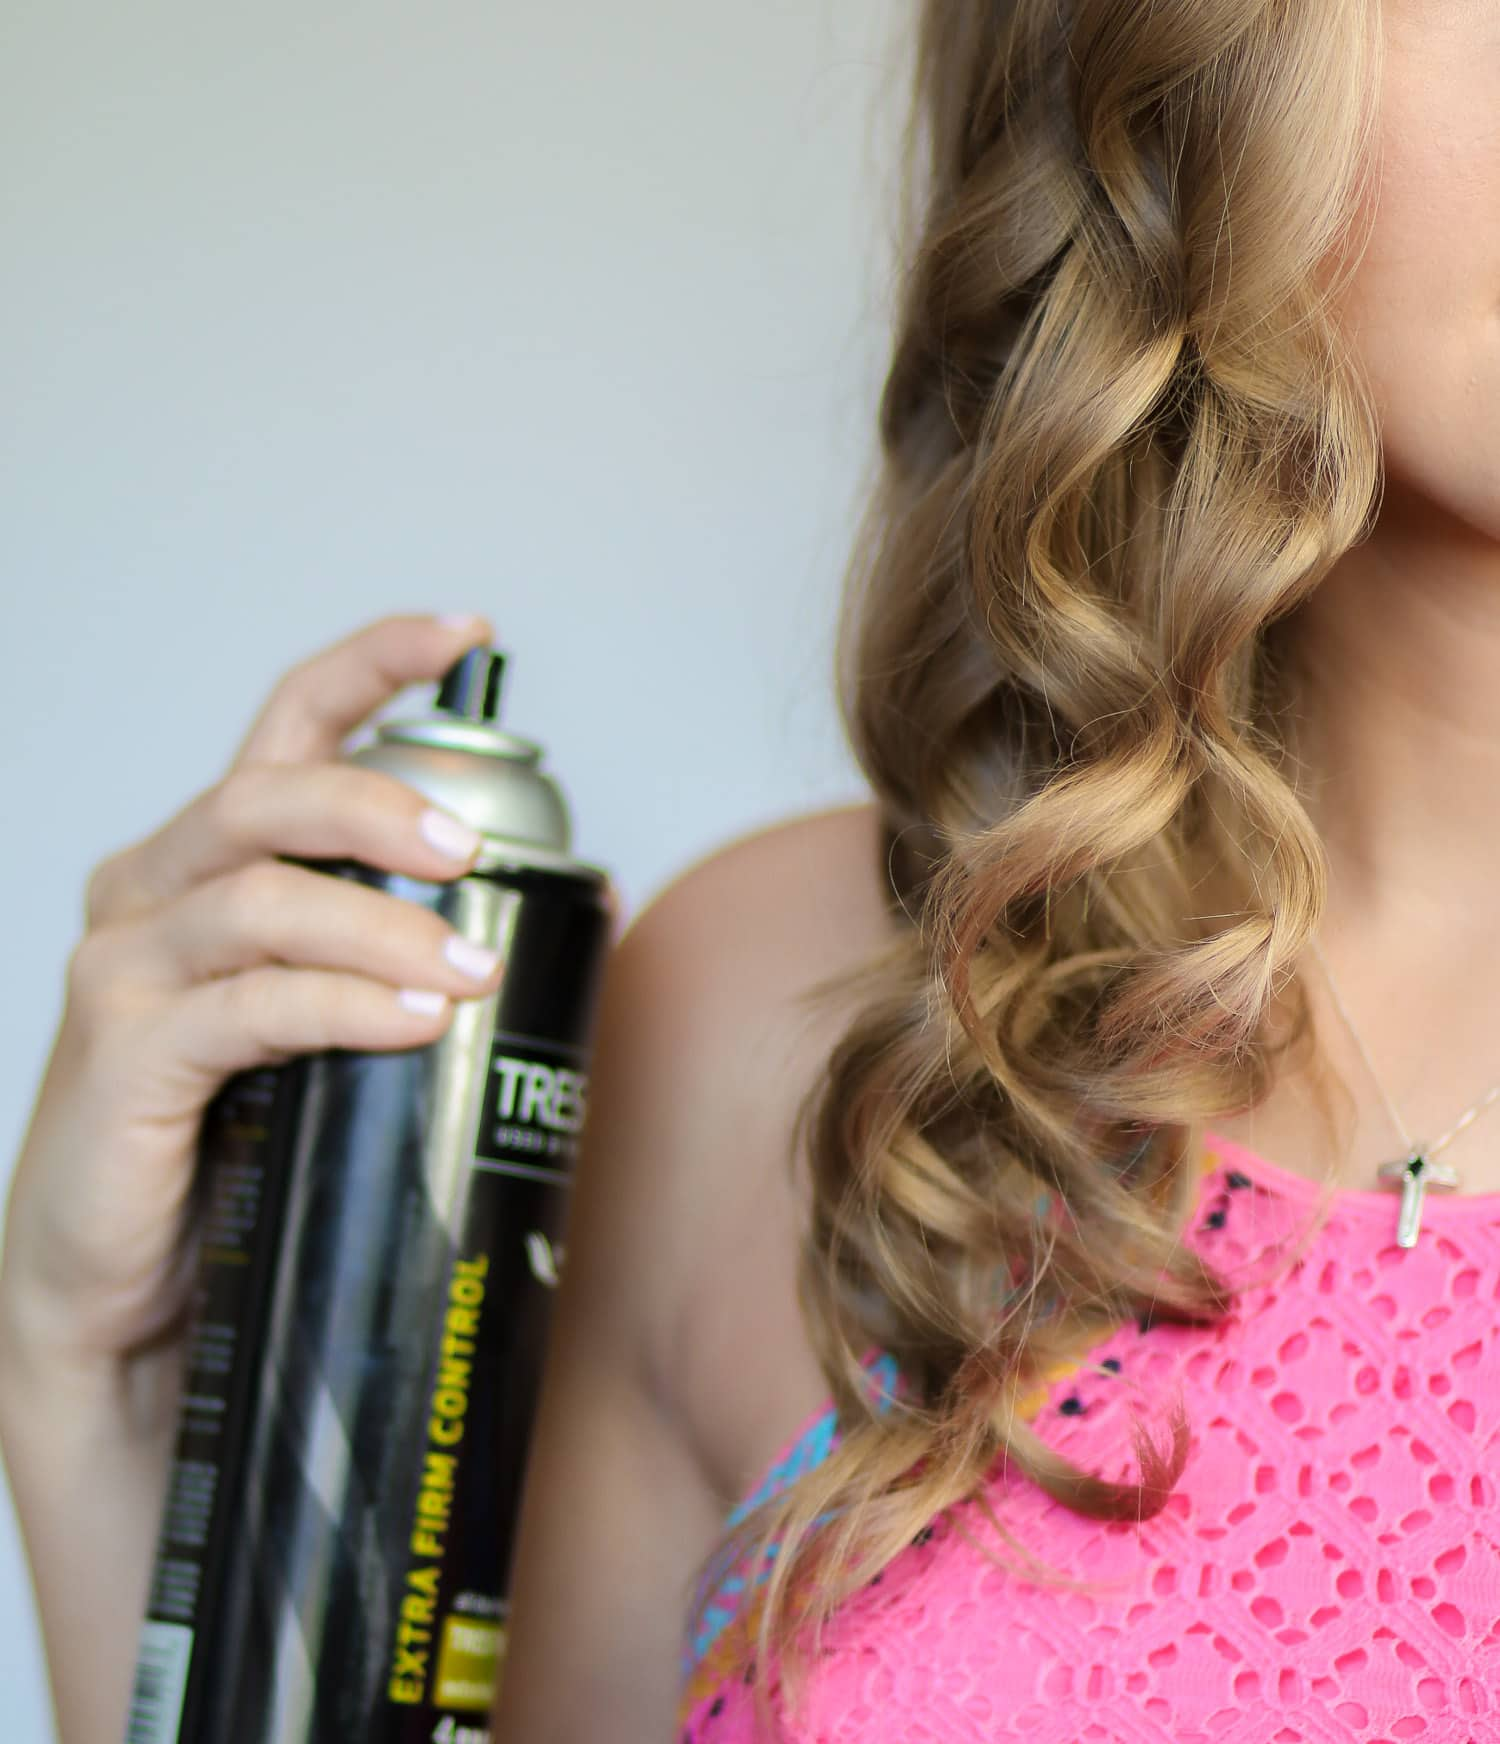 Beachy mermaid curls tutorial by beauty blogger Ashley Brooke from ashleybrookenicholas.com!